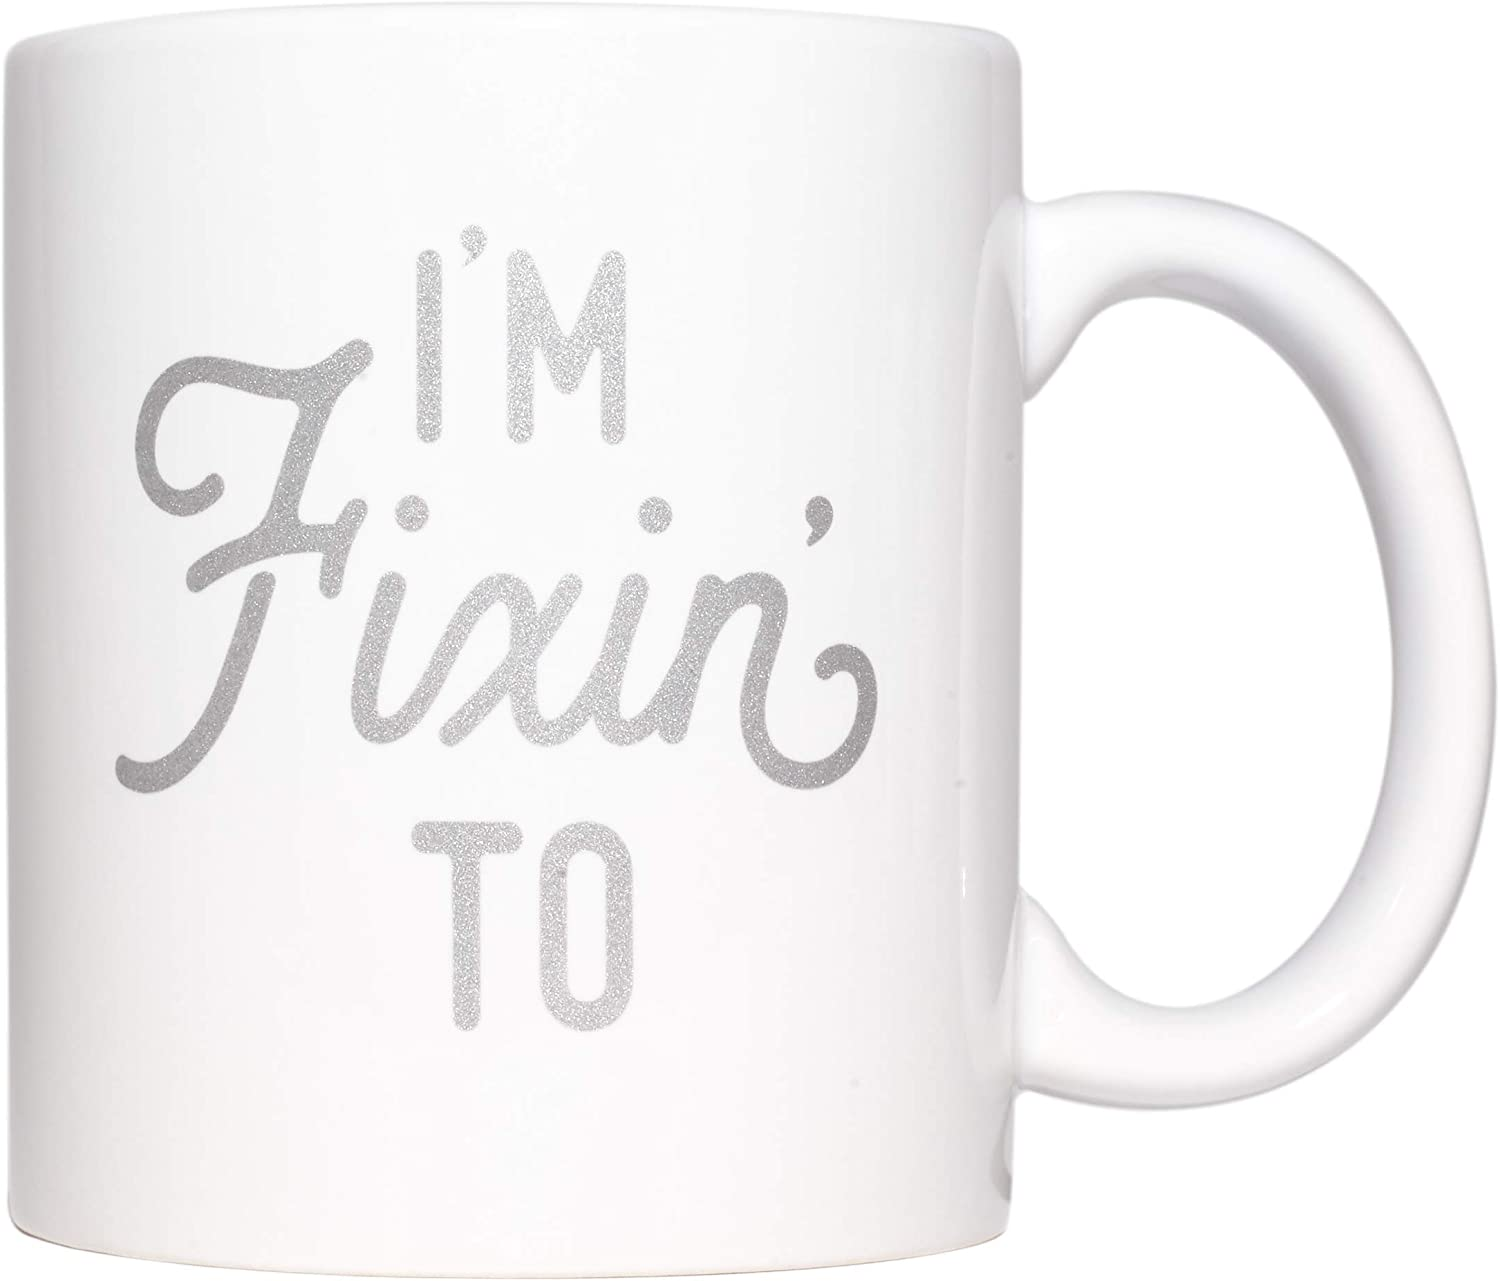 Texas Coffee Mug with I'm Fixin' To Metallic Silver Design Texas Gift with Gift Box